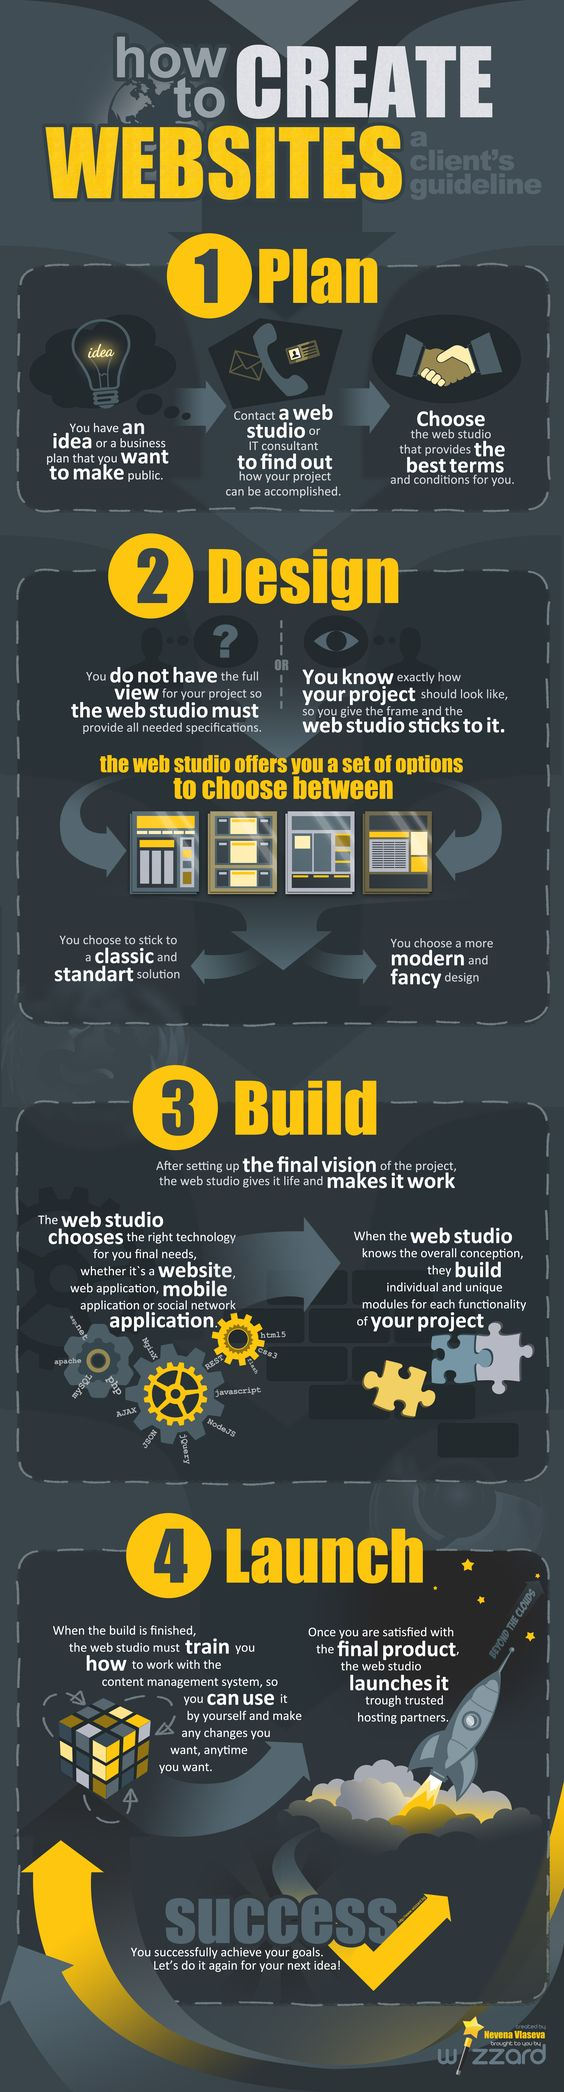 The author forgot the testing phase... #projectmanagement #web - How To Create Websites [INFOGRAPHIC]